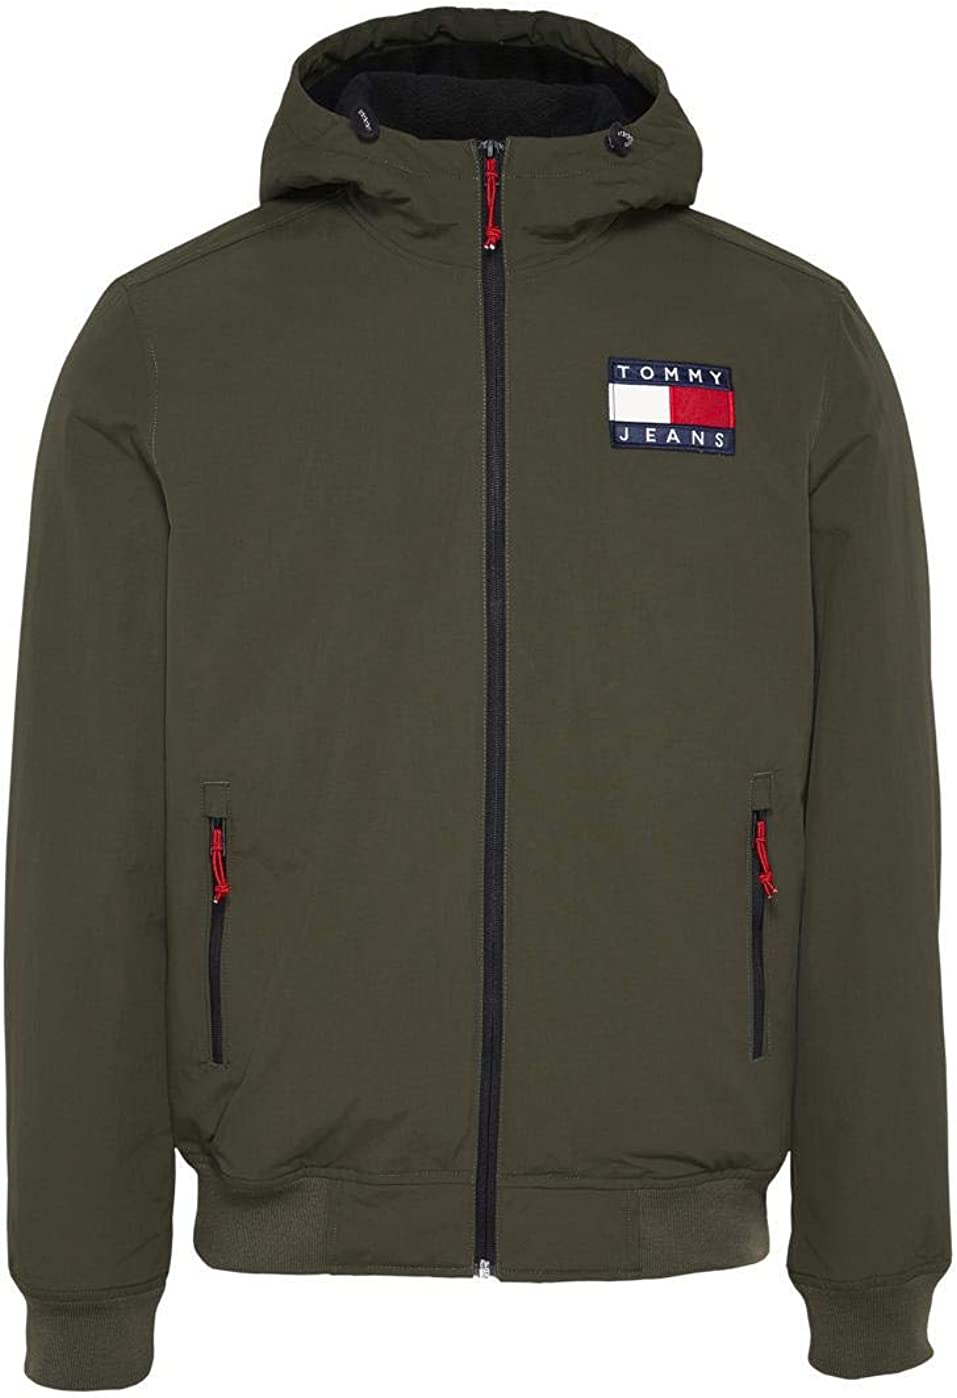 Chaqueta Tommy Jeans Padded Nylon Verde Hombre